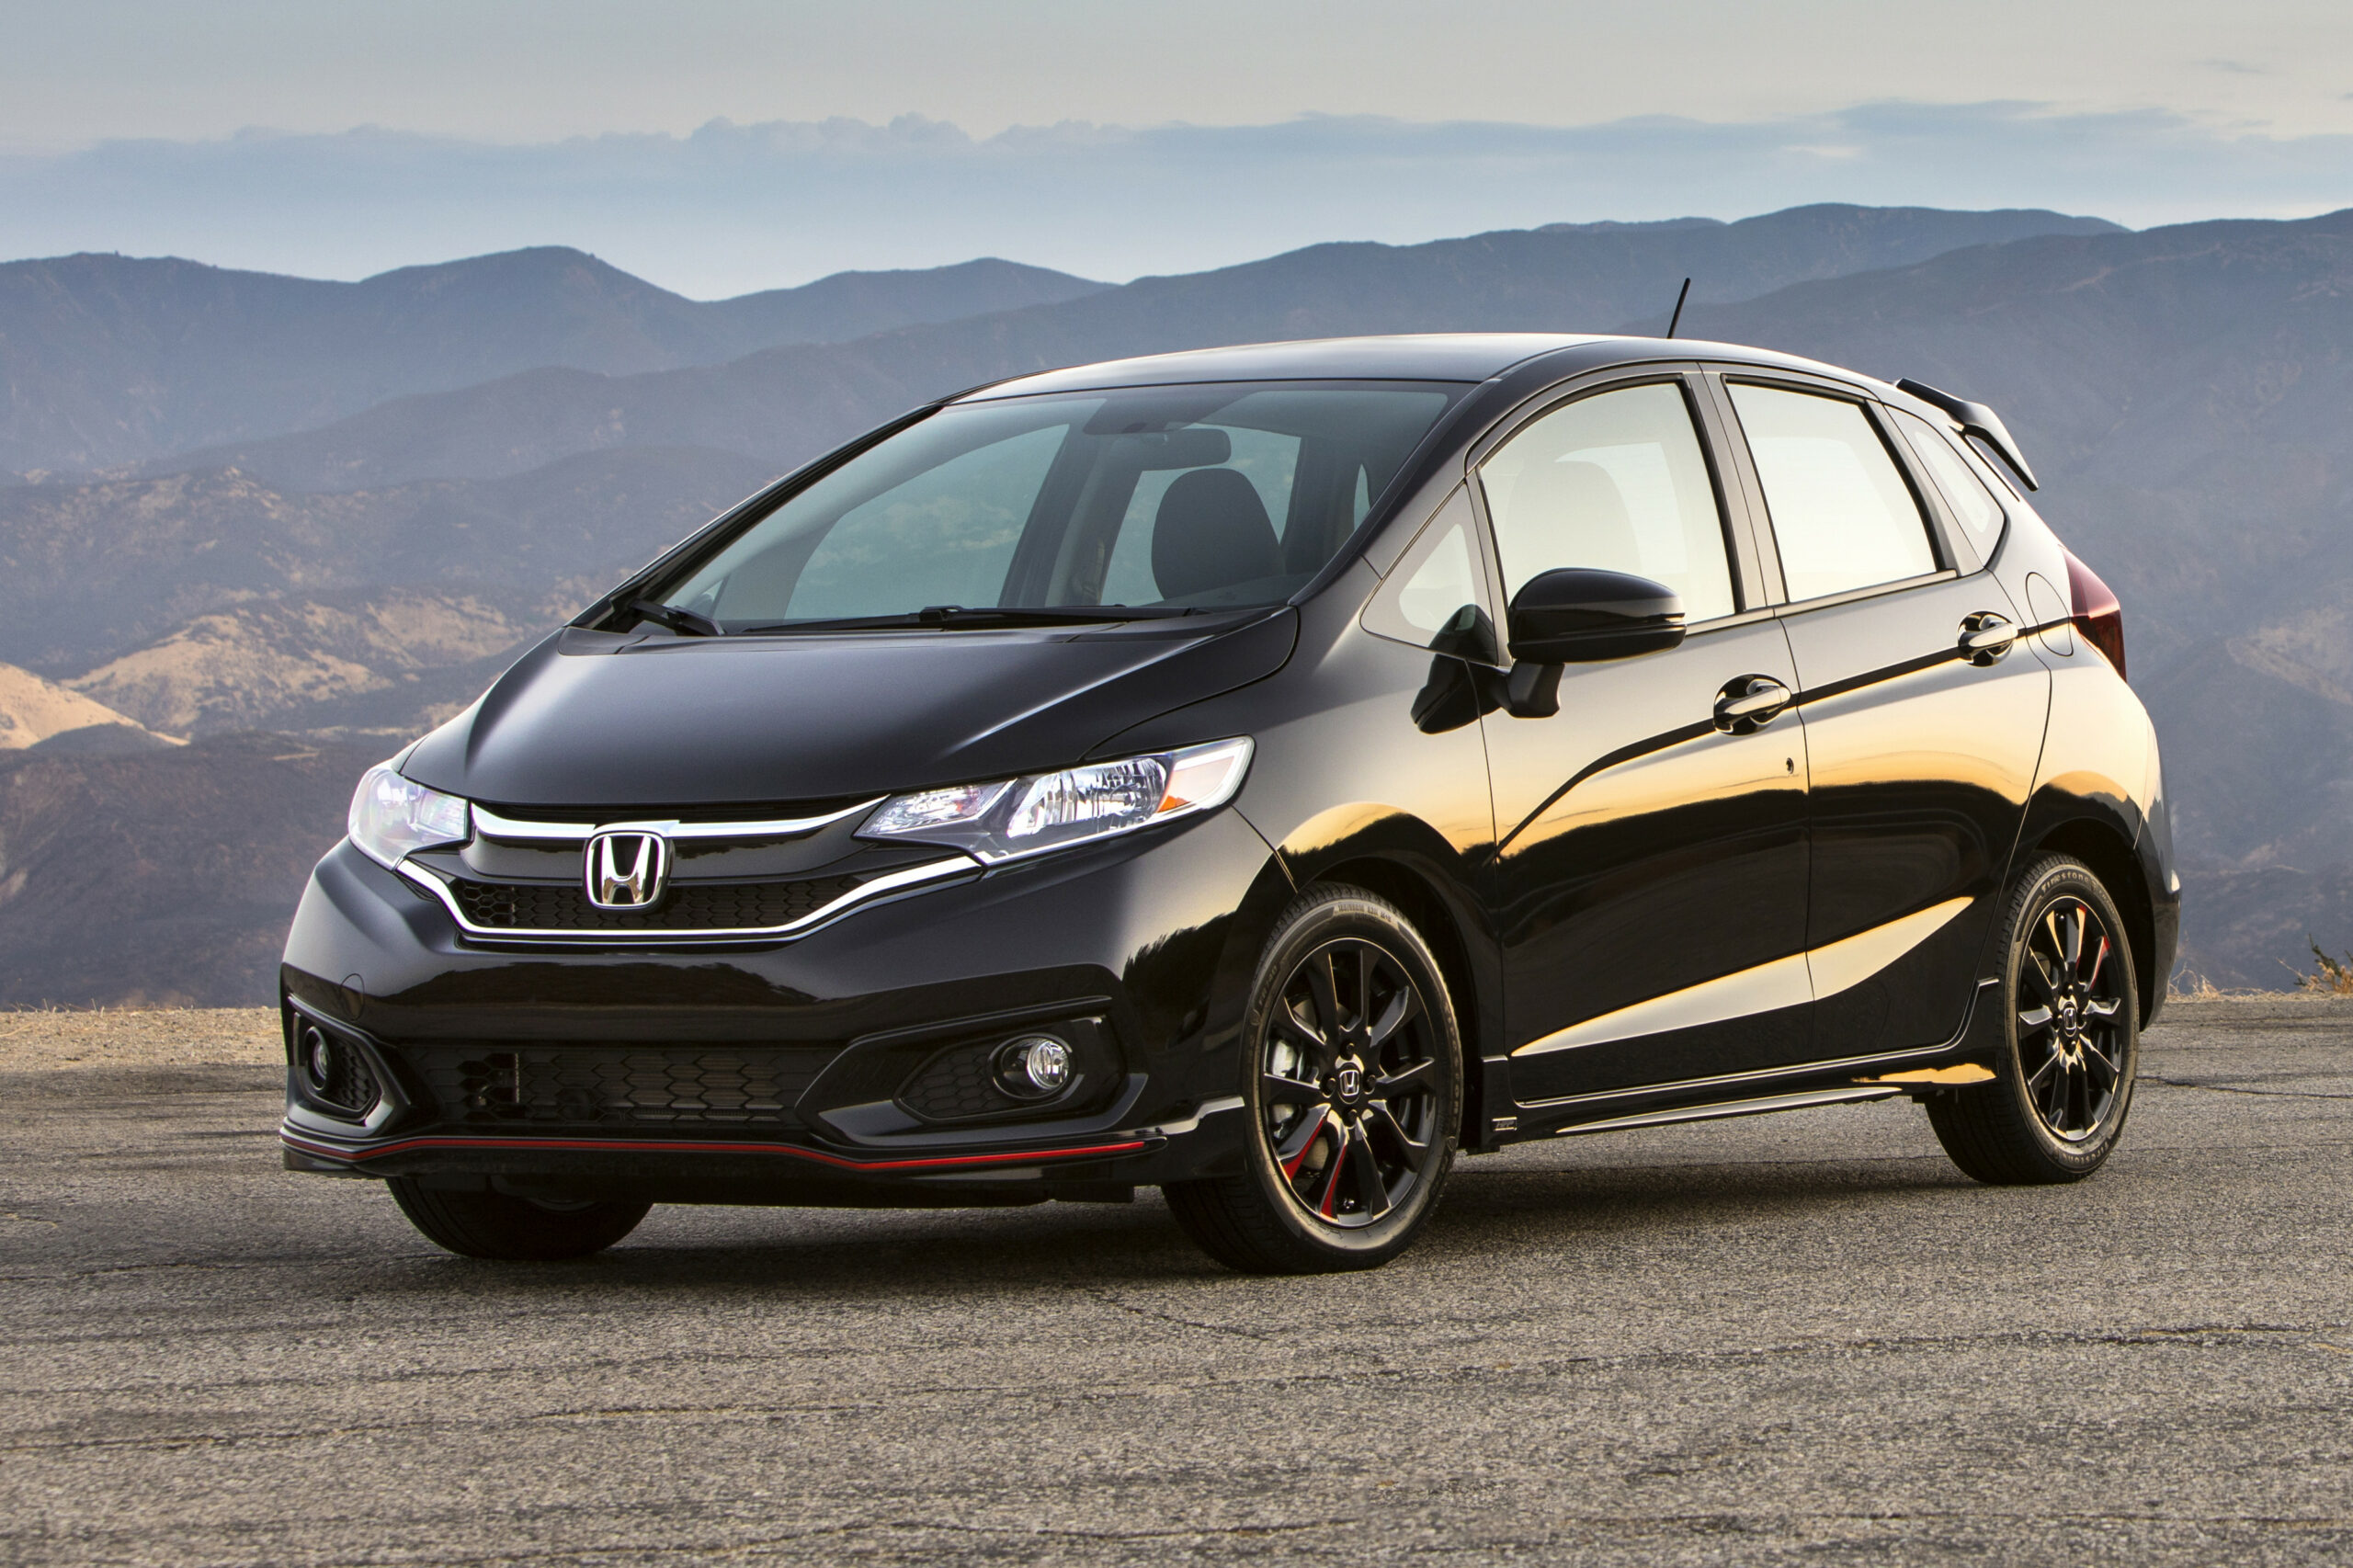 Honda Fit: Which Should You Buy, 9 or 9? | News | Cars